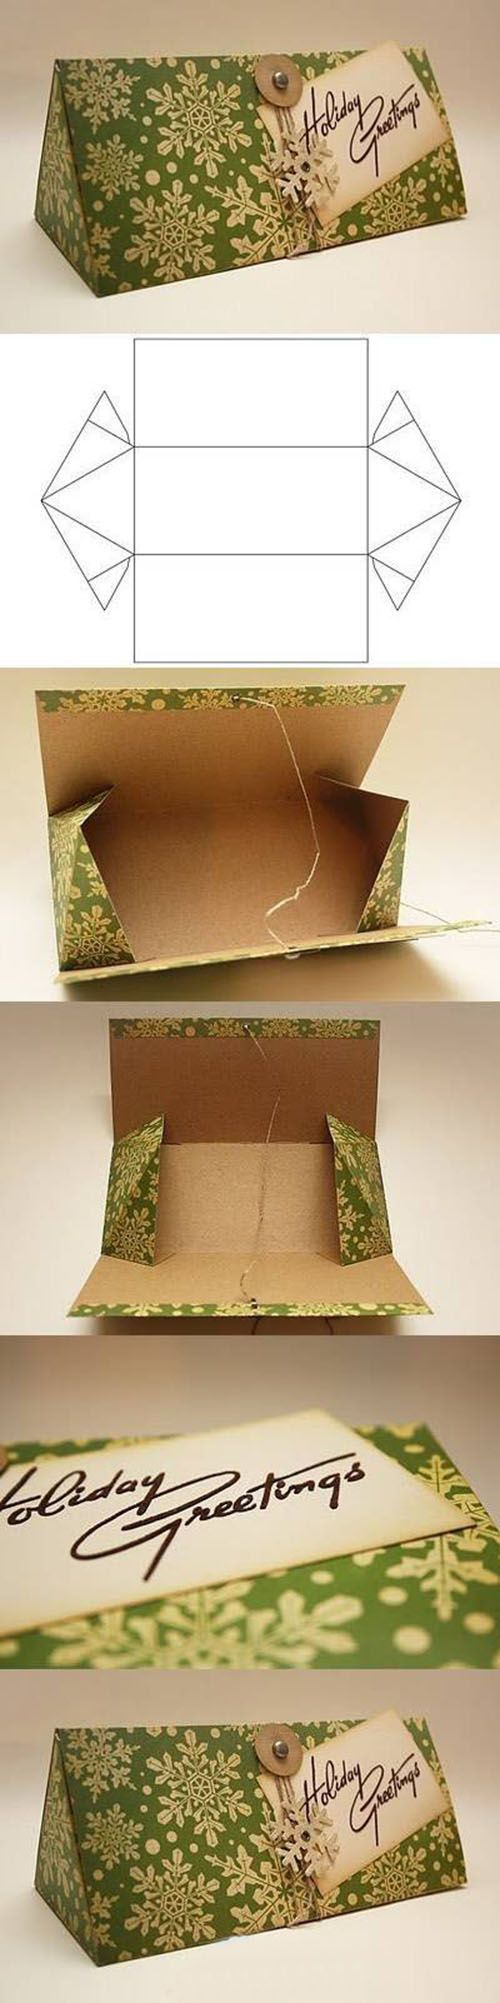 Diy Paper Bag | DIY & Crafts